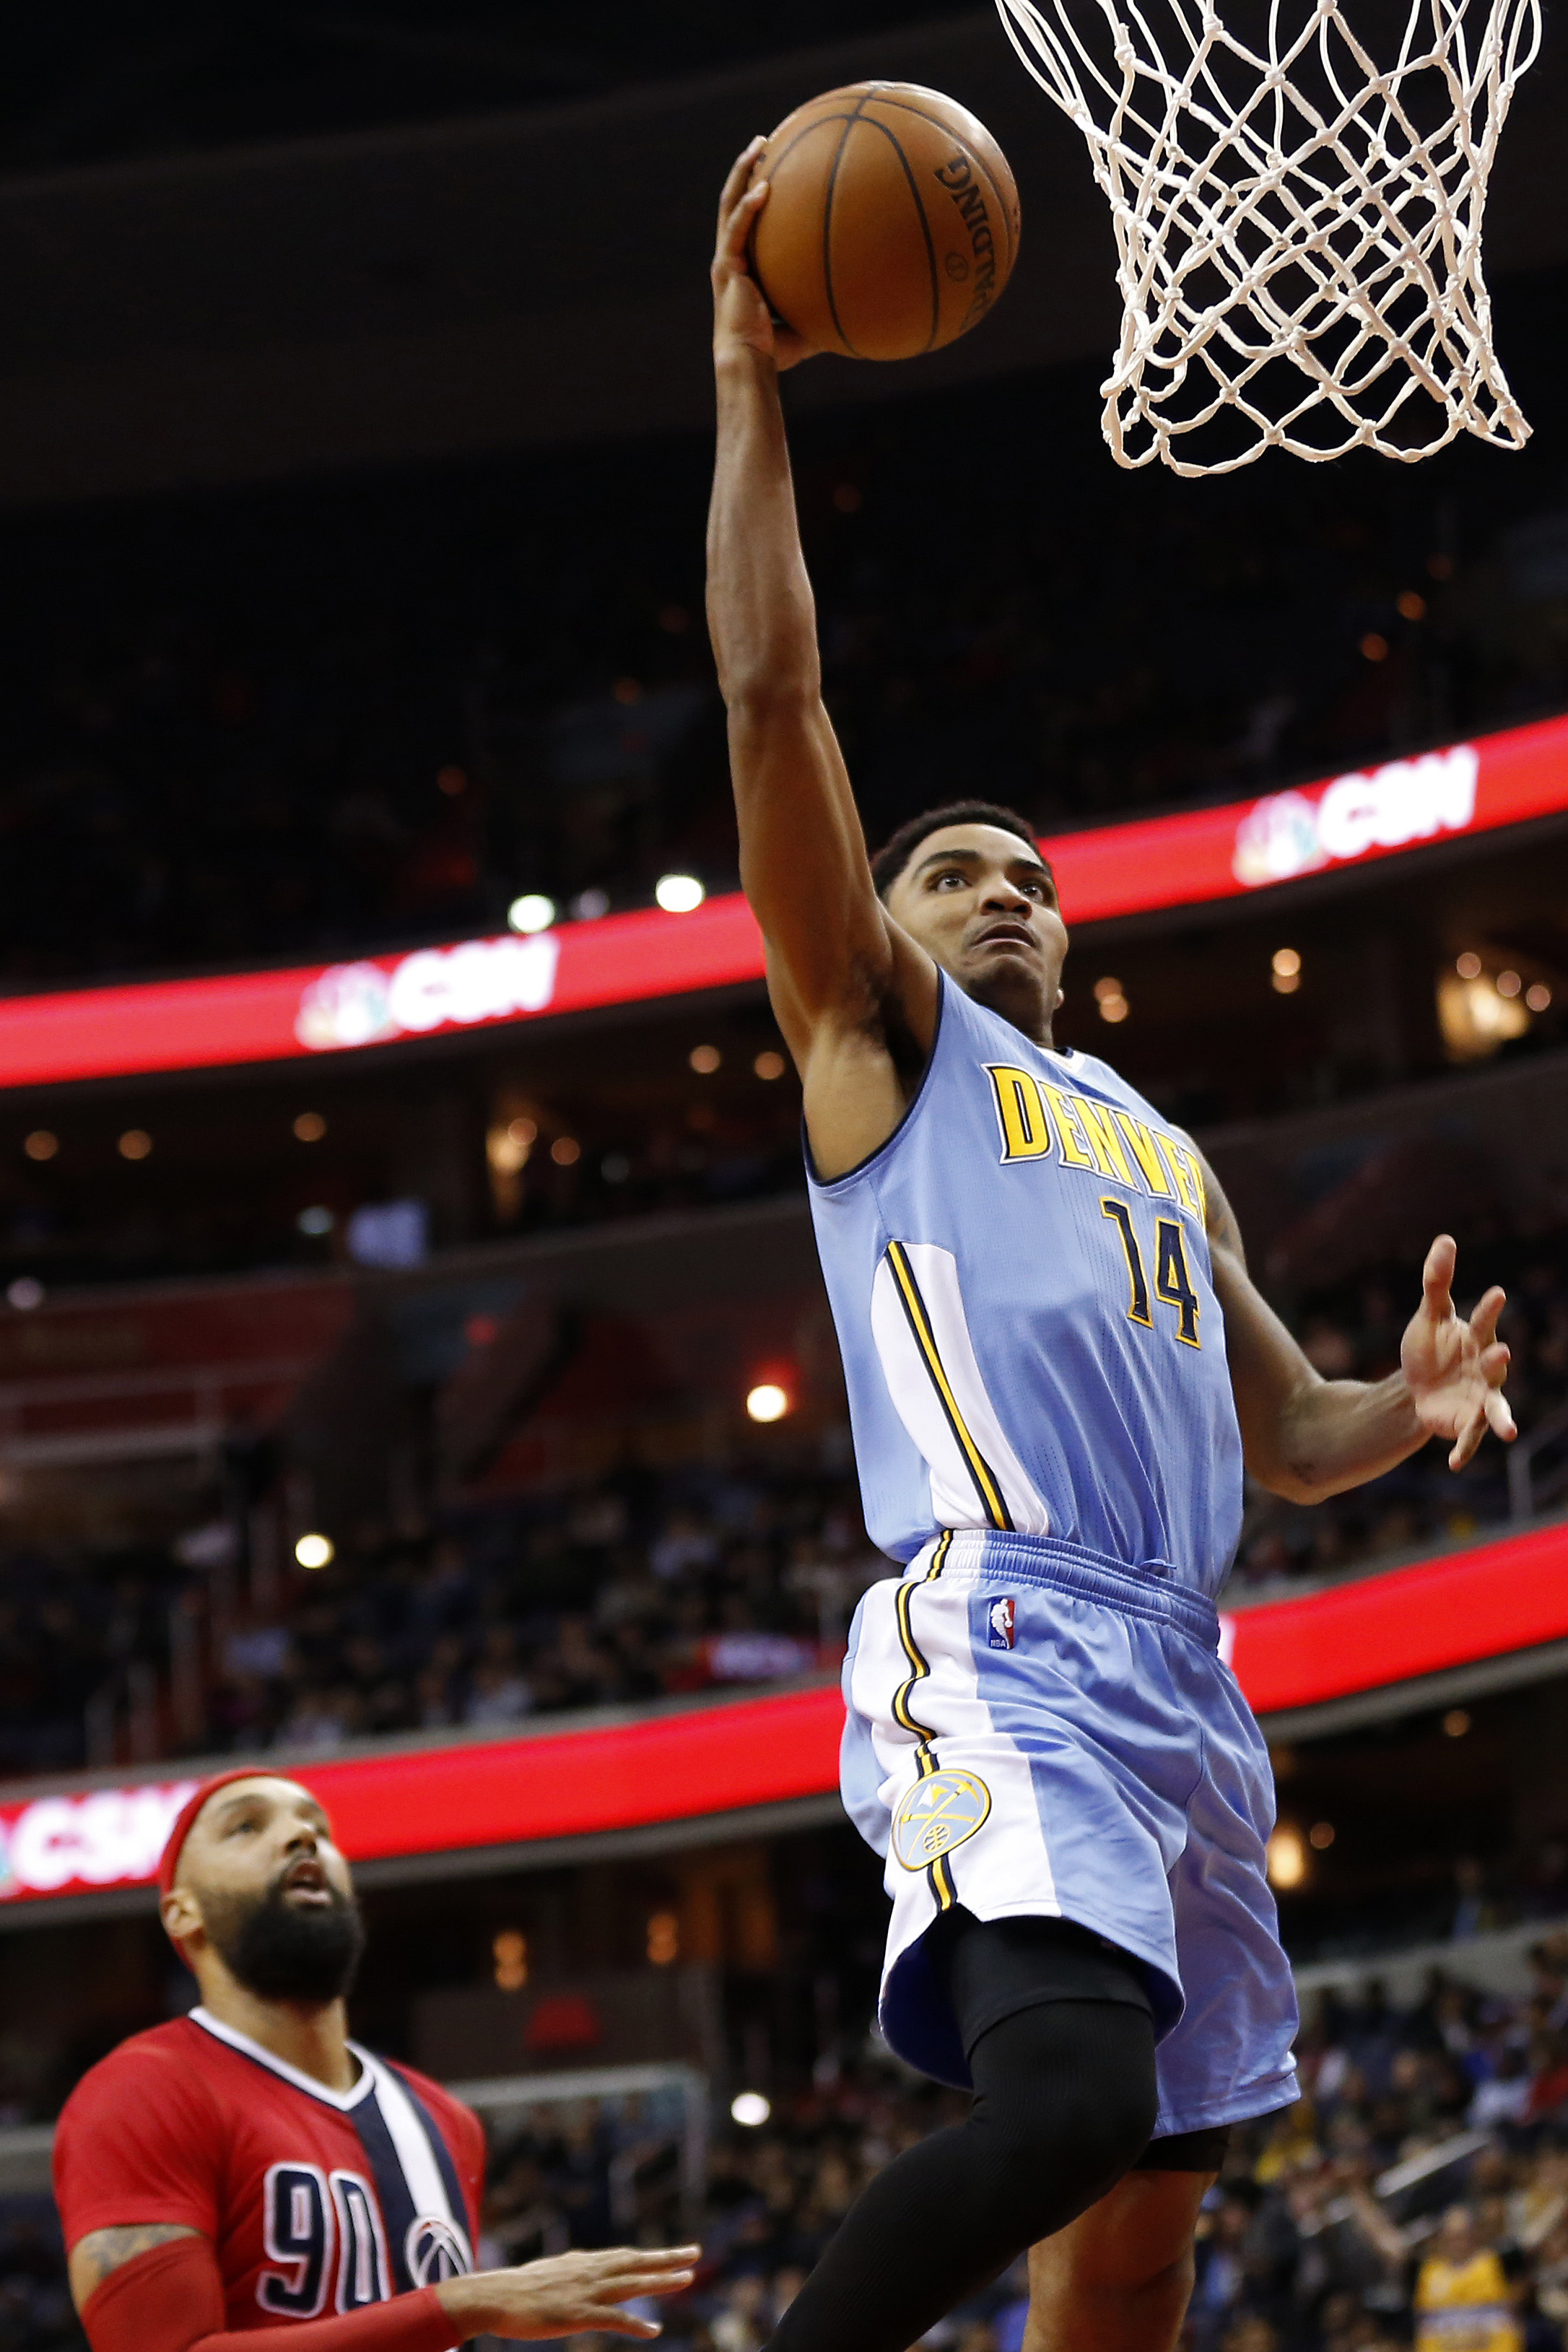 Gary Harris has taken flight in his second year with the Denver Nuggets